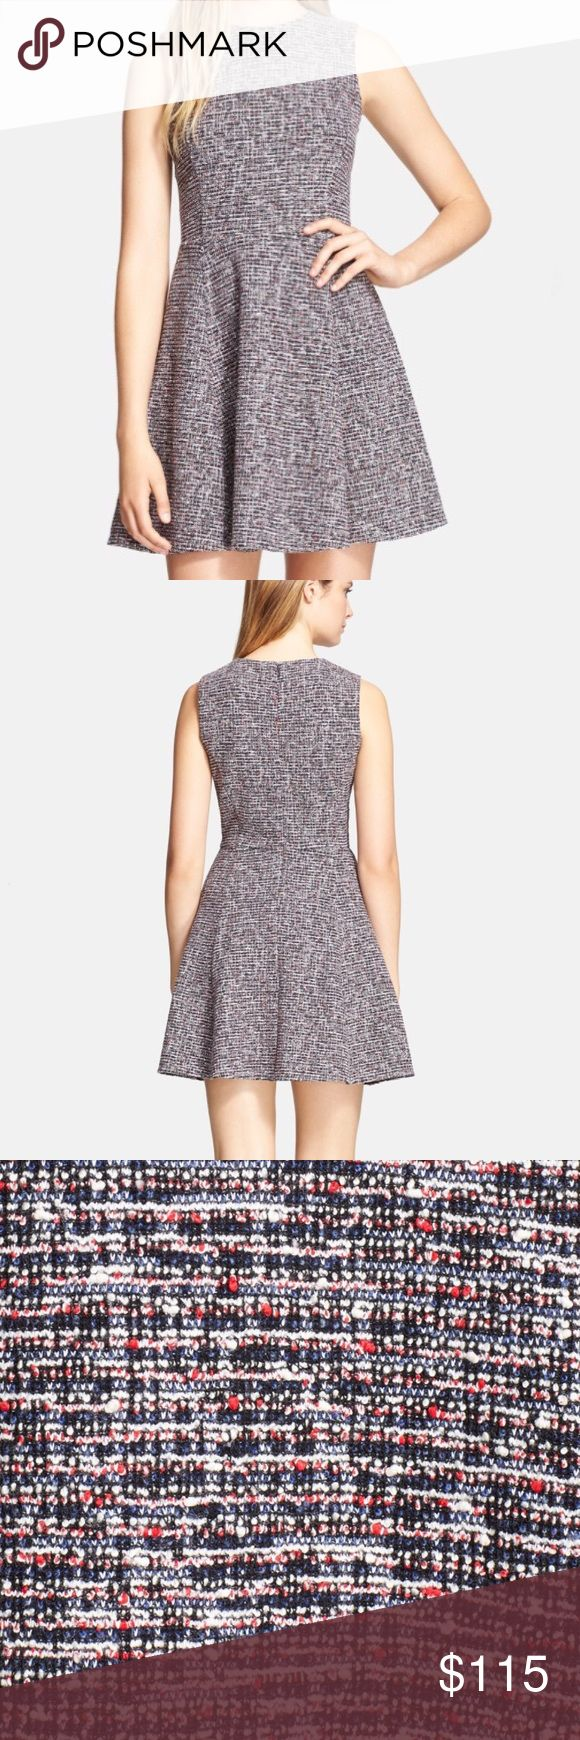 Theory Tweed Dress Beautiful Prospect K Tillora Tweed Dress by Theory in size 6. Originally $325 before tax (see photo). Professional with a blazer yet easy to dress down A-line swing dress! Soft, not stiff. Smoke and pet free home. Hope you enjoy! 😍 Keywords: Anthropologie, Free People Theory Dresses